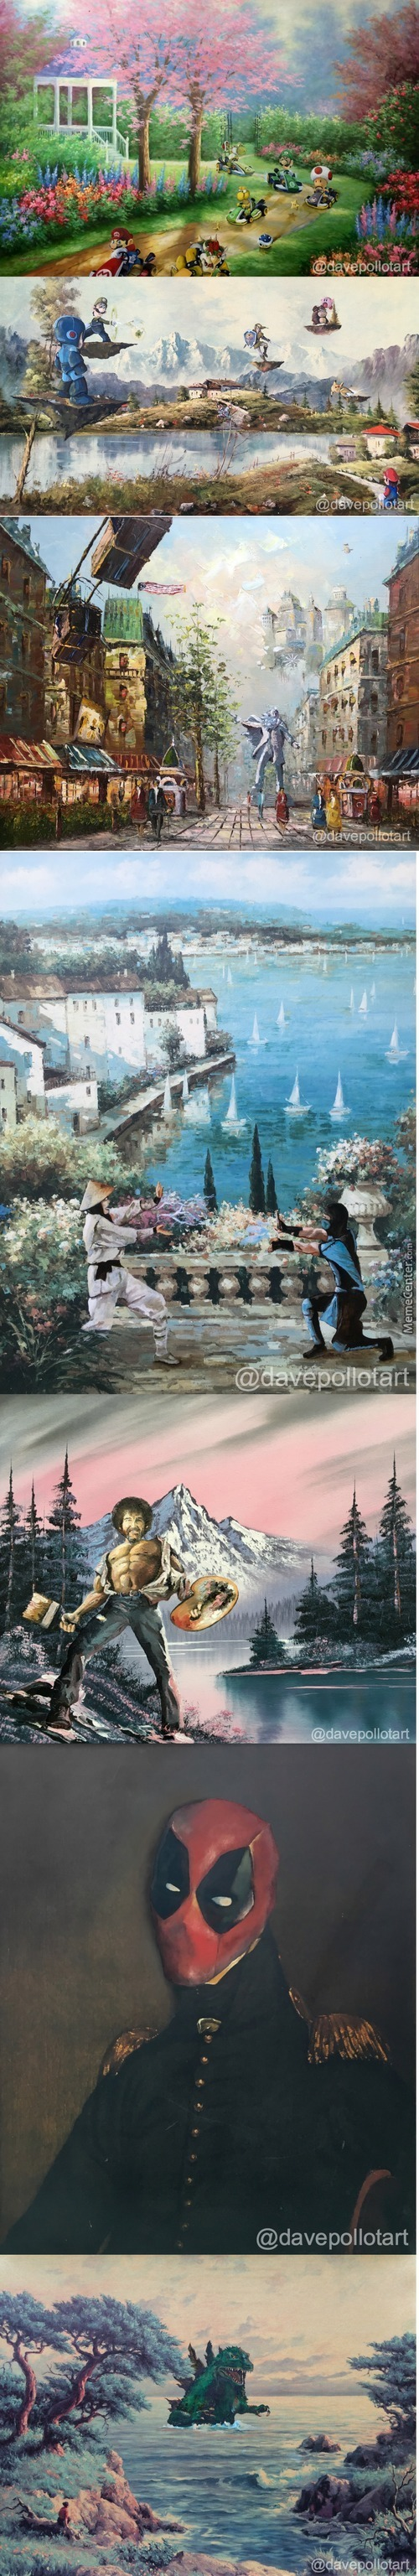 Altered Artwork Thrift Store Paintings Re Imaged By Dave Pollot